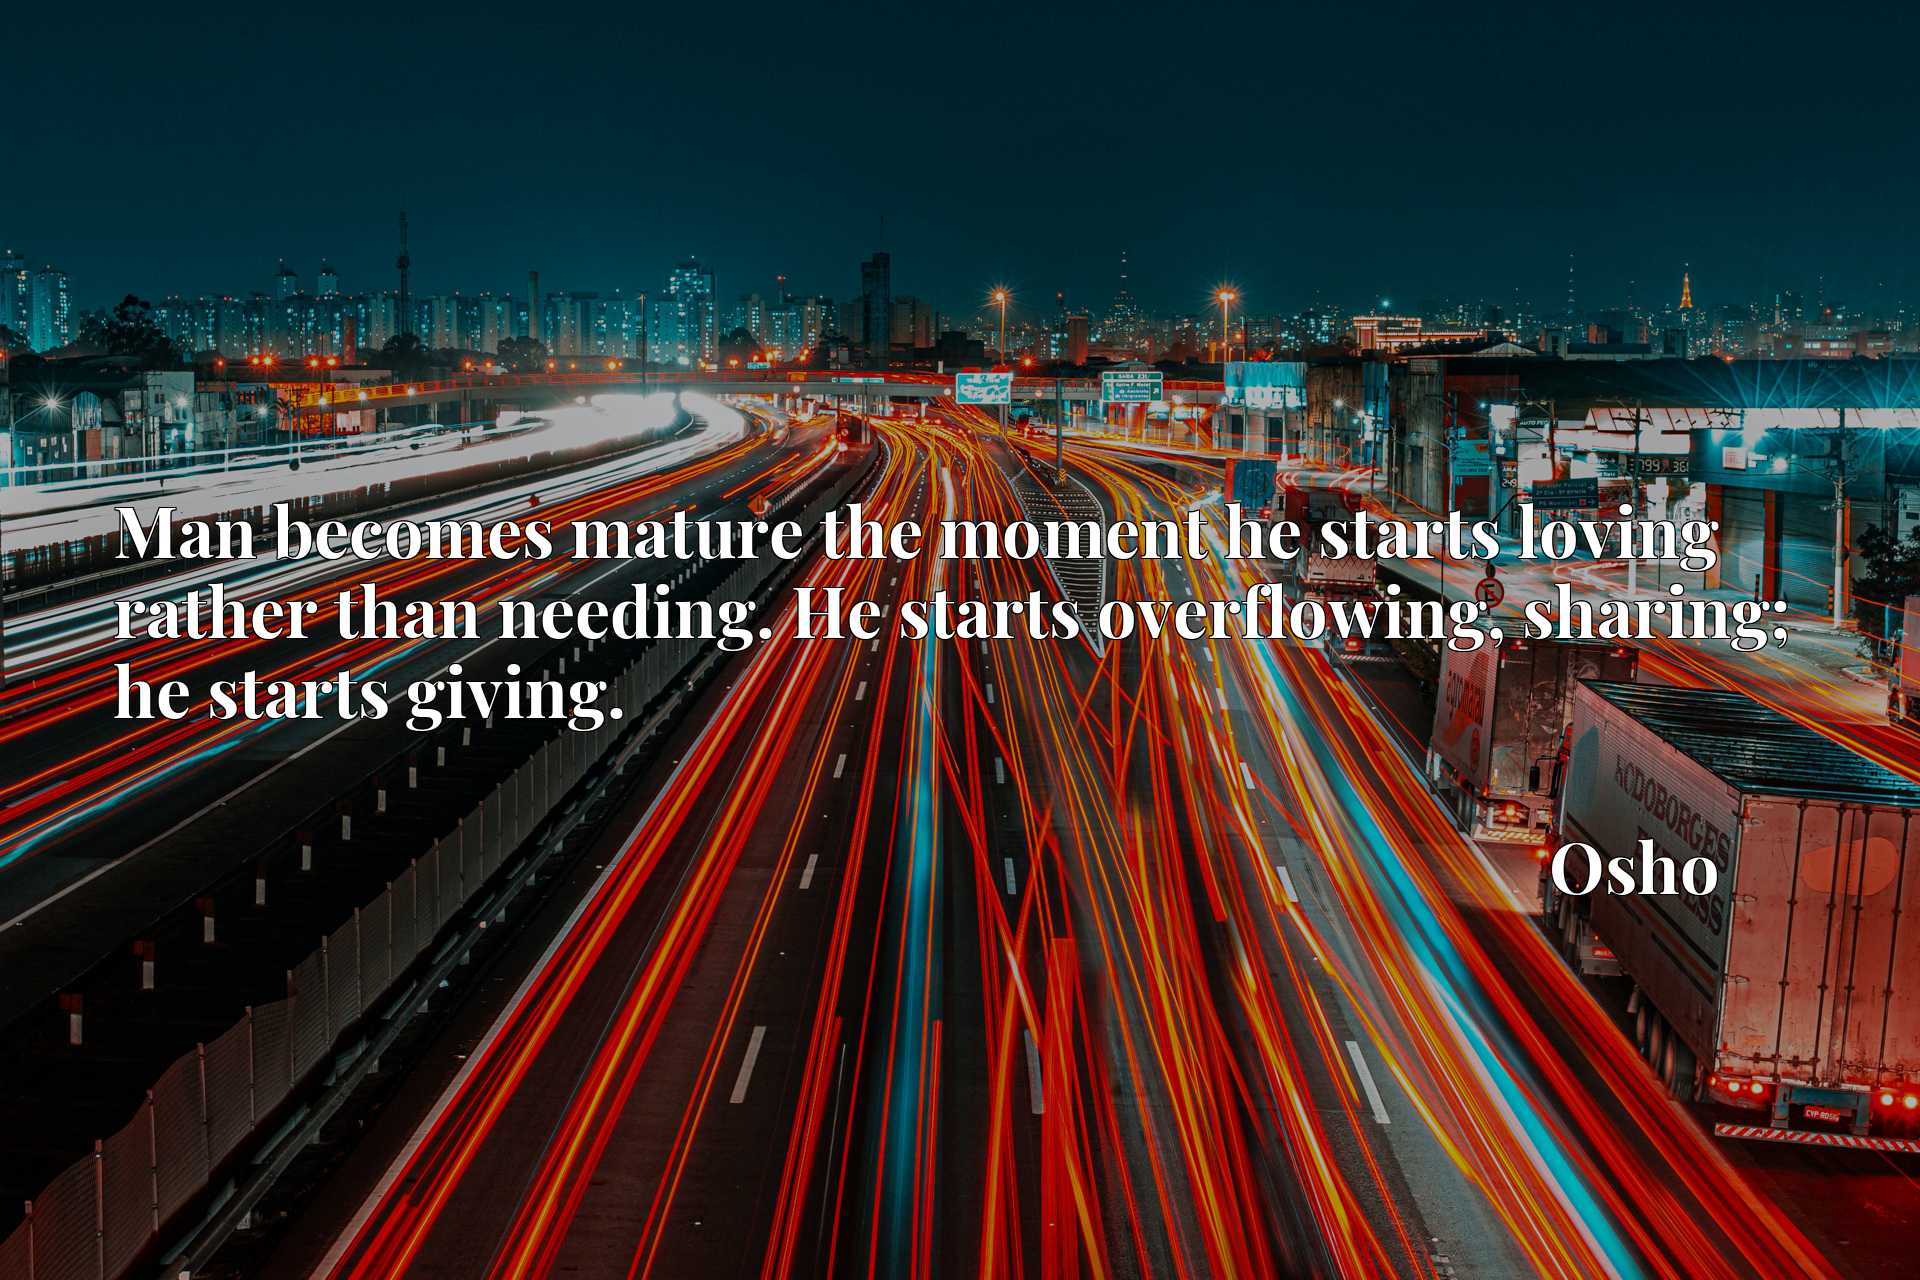 Man becomes mature the moment he starts loving rather than needing. He starts overflowing, sharing; he starts giving.